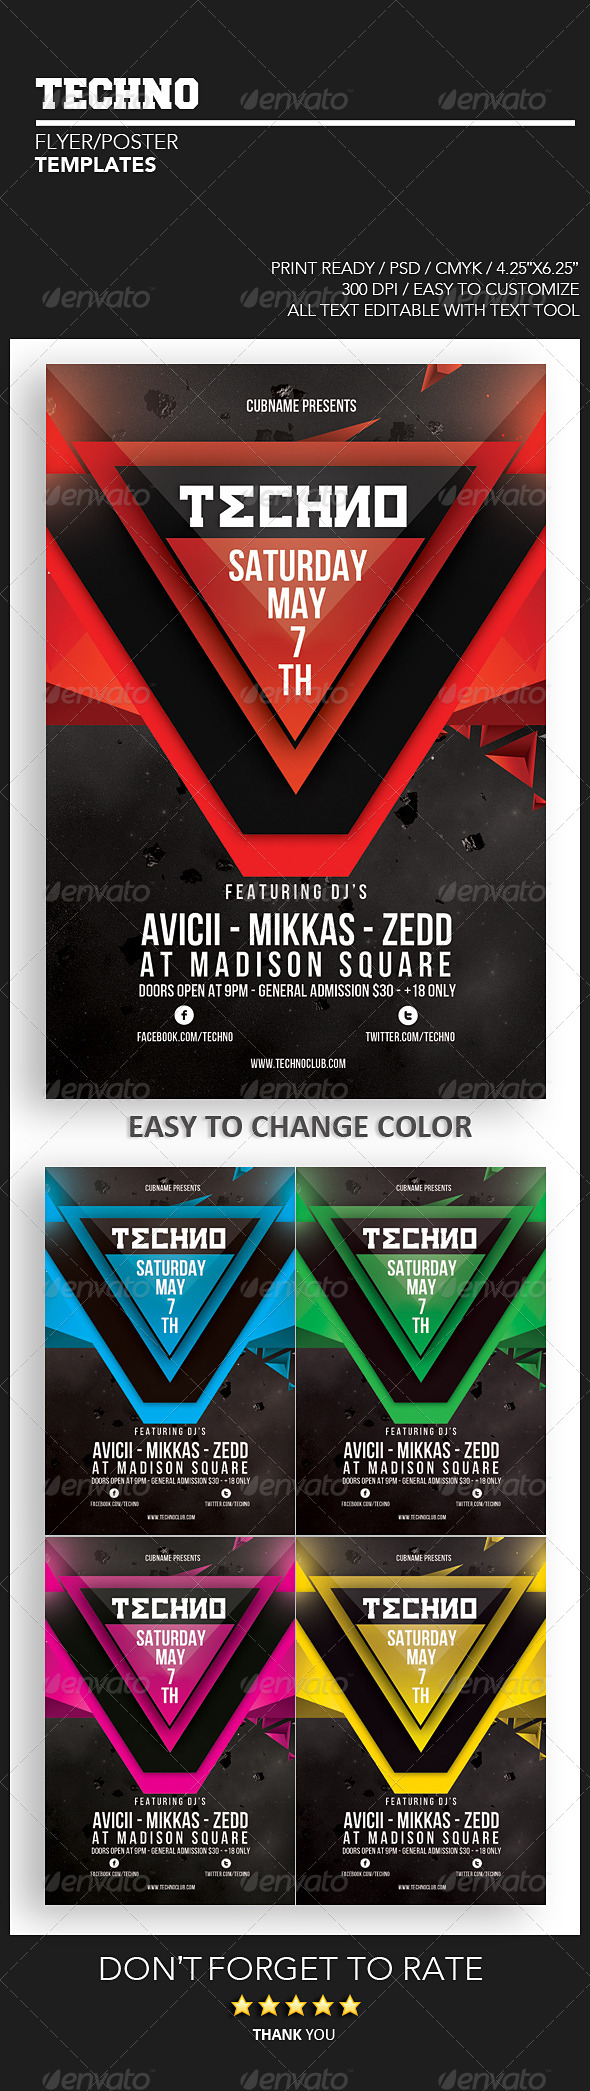 Techno Flyer - Events Flyers